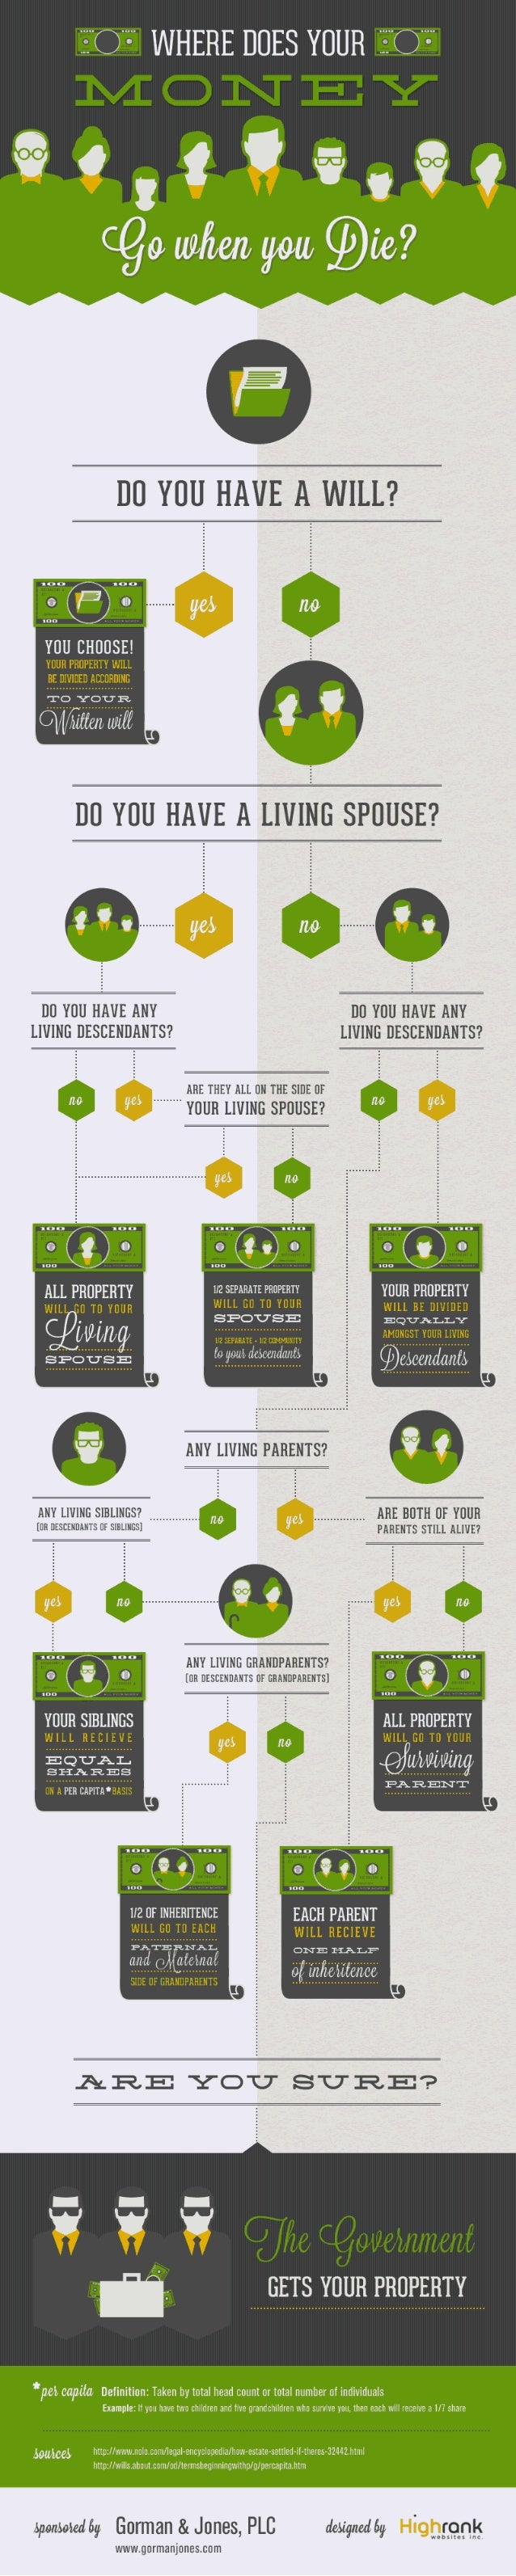 Where Does Your Money Go When You Die?